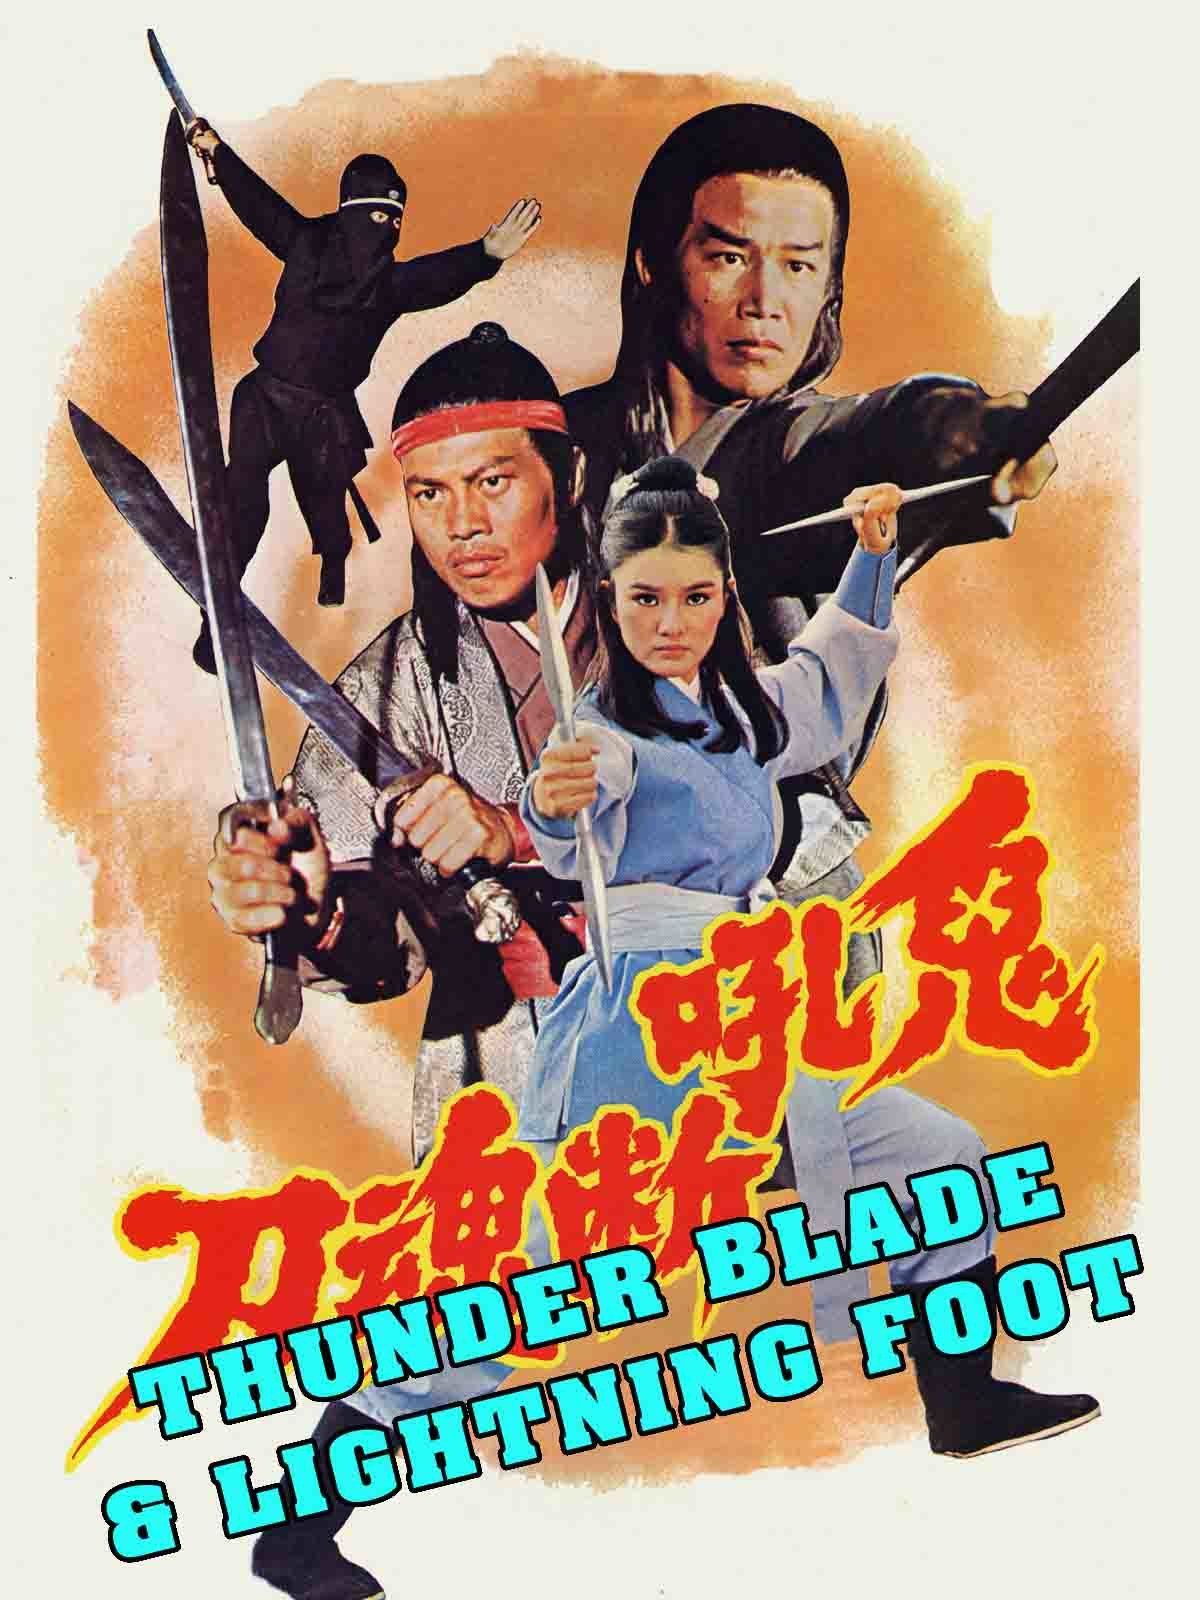 Thunder Blade & Lightning Foot